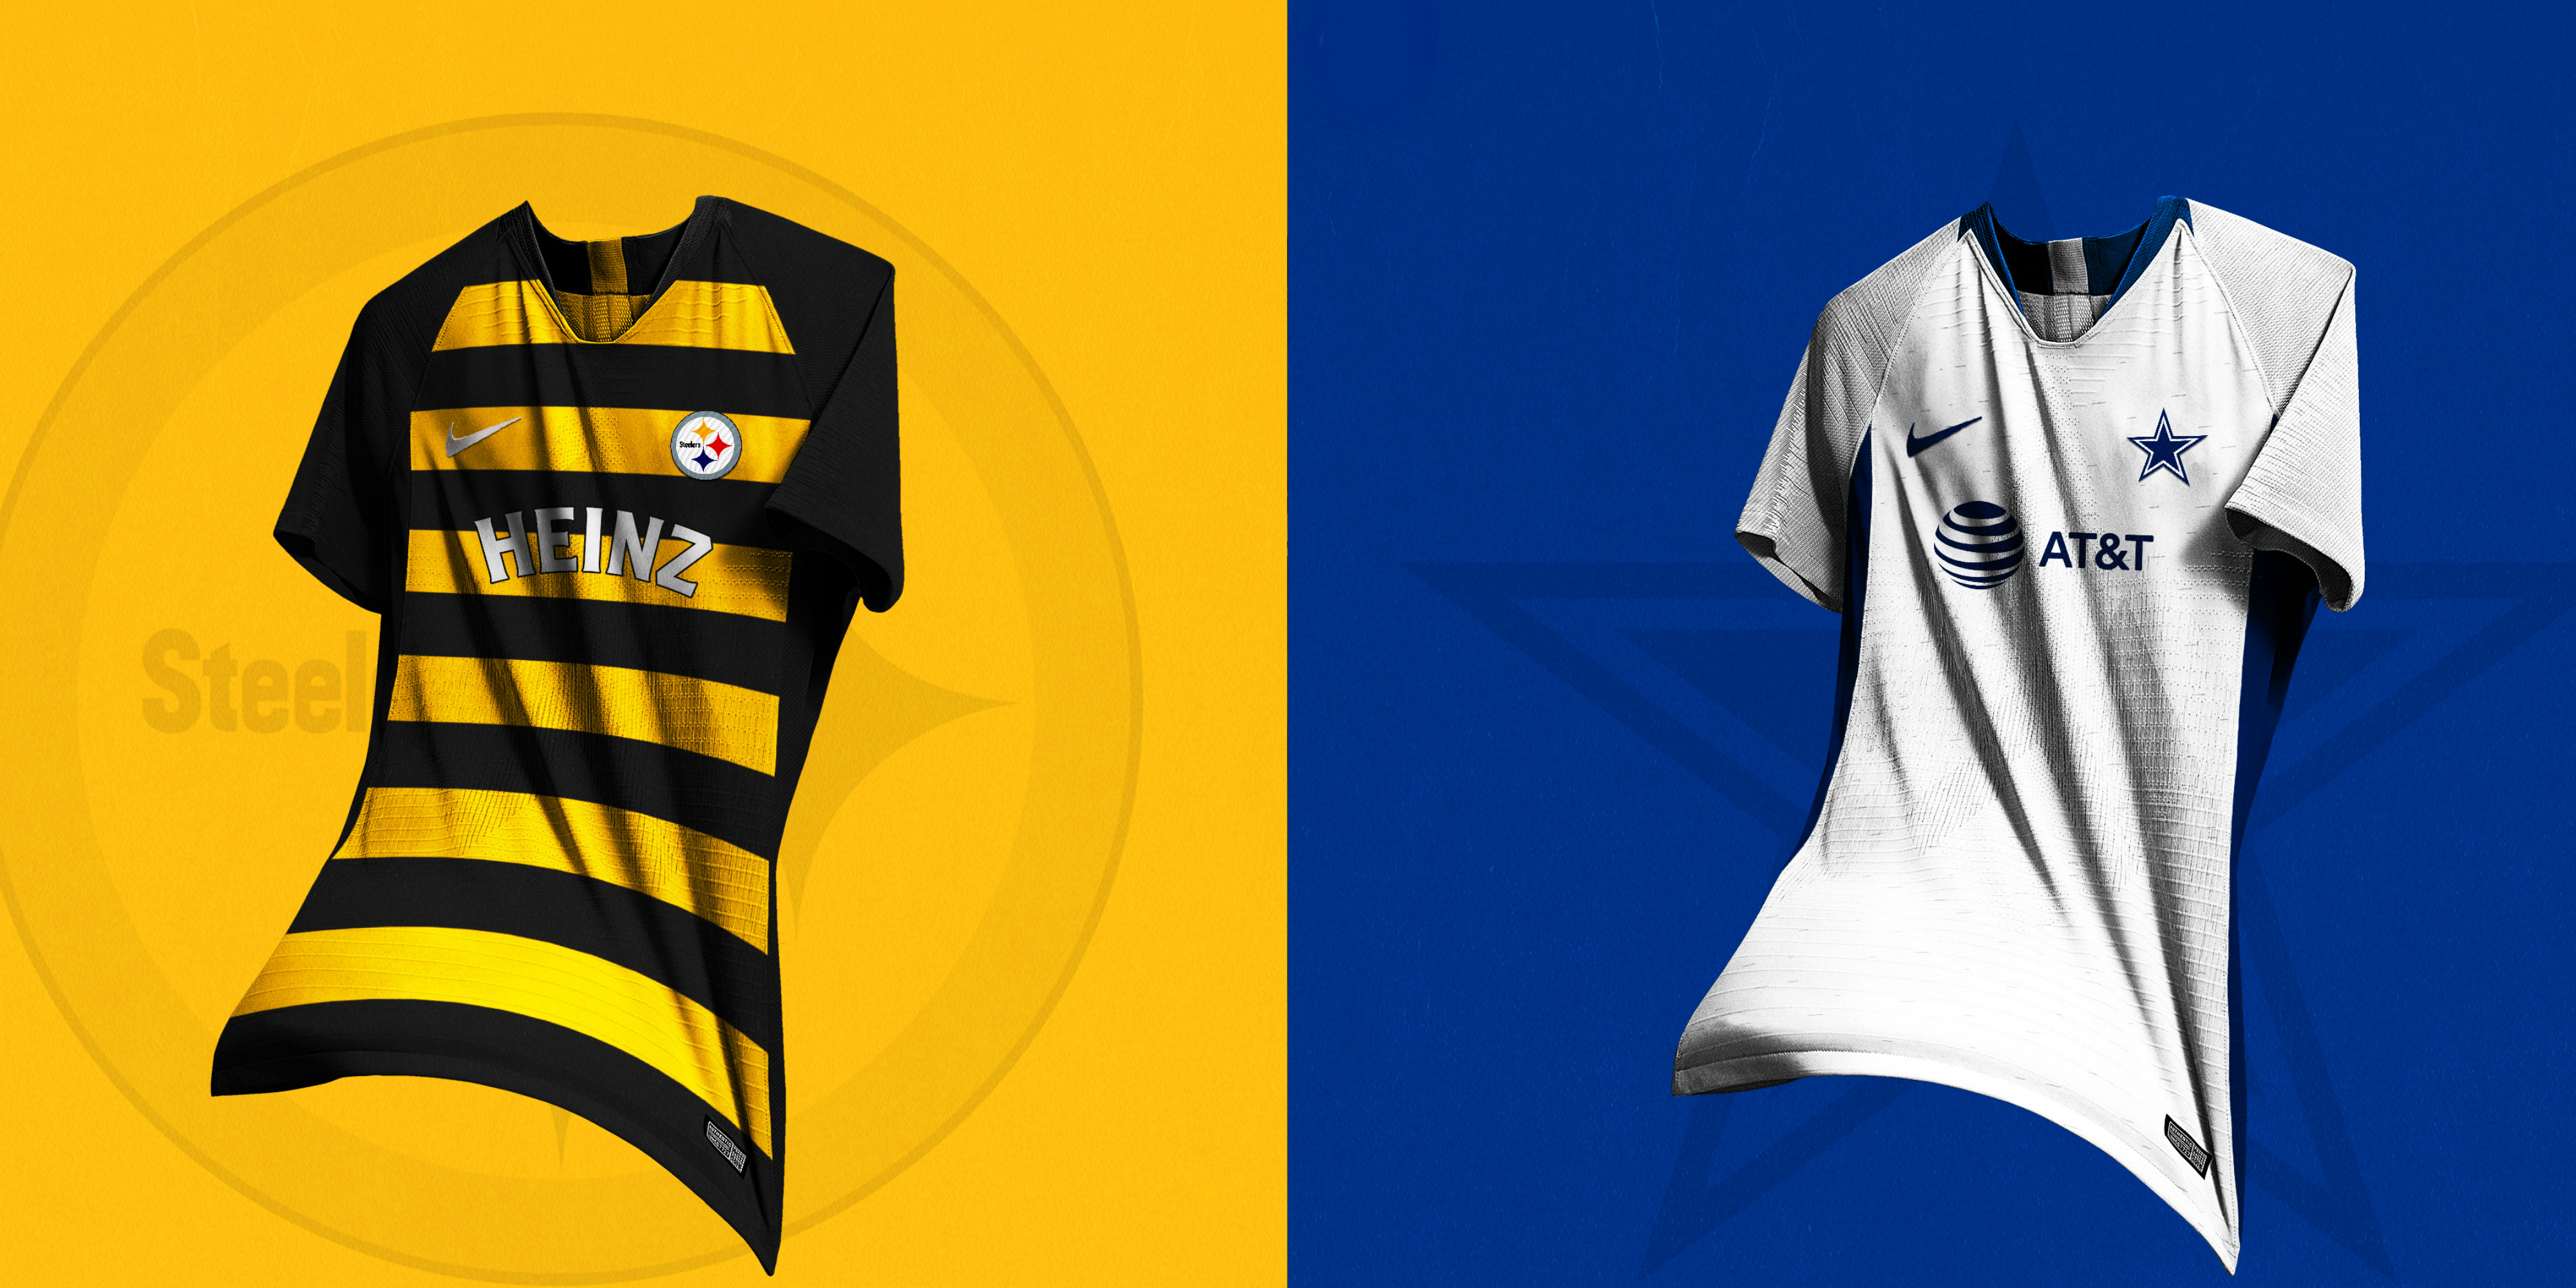 c6e8dac9930 What If NFL Teams Had Soccer Jerseys? We Designed Kits For All 32 Teams